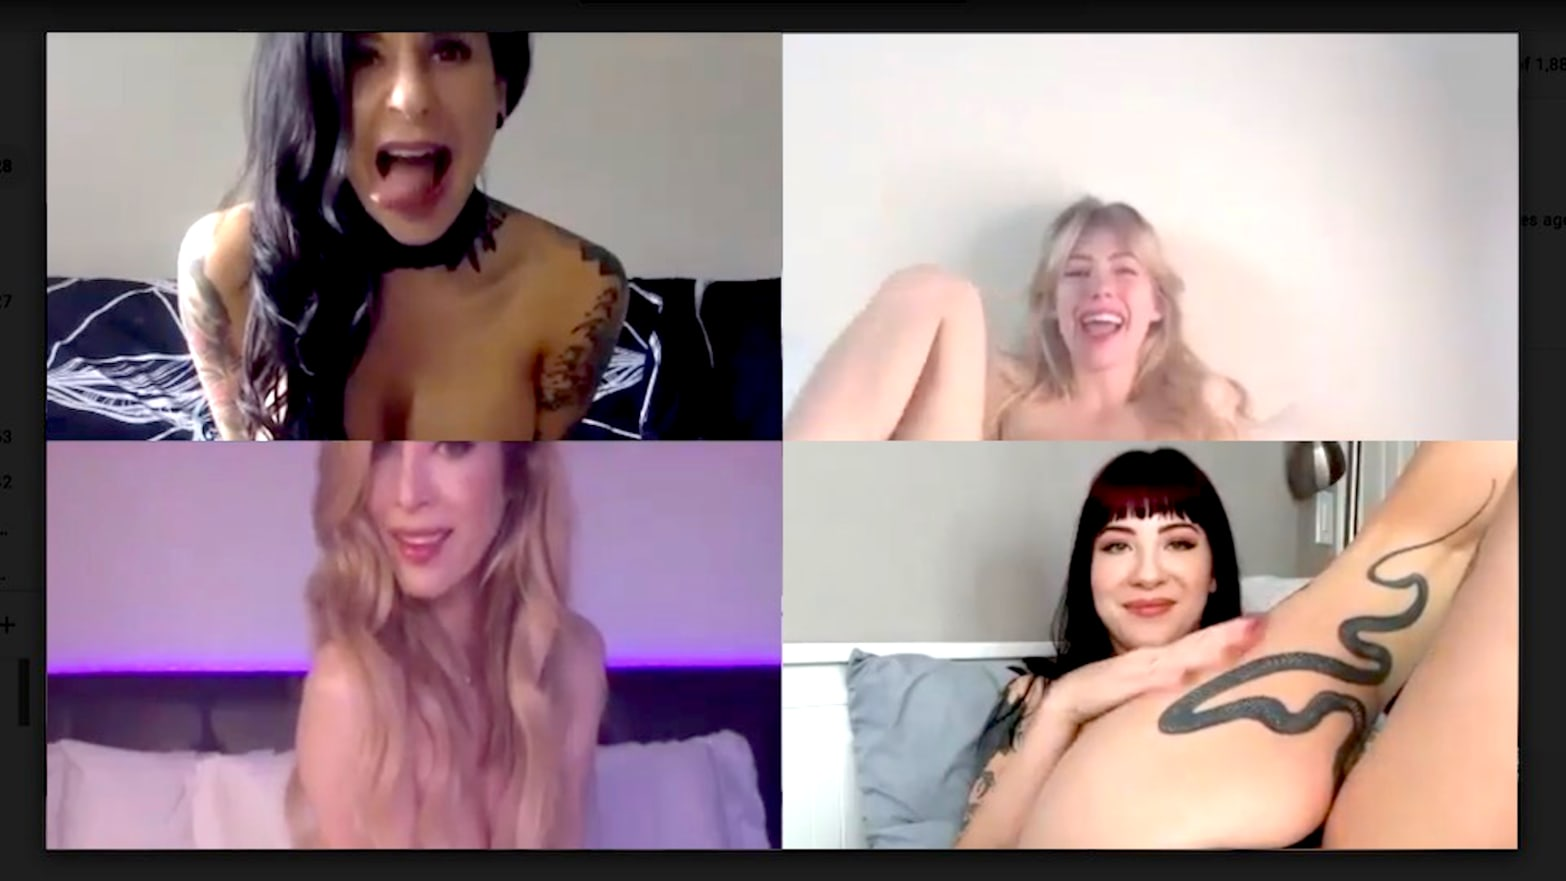 Adult Porn Memes the rise of video conferencing quarantine porn during